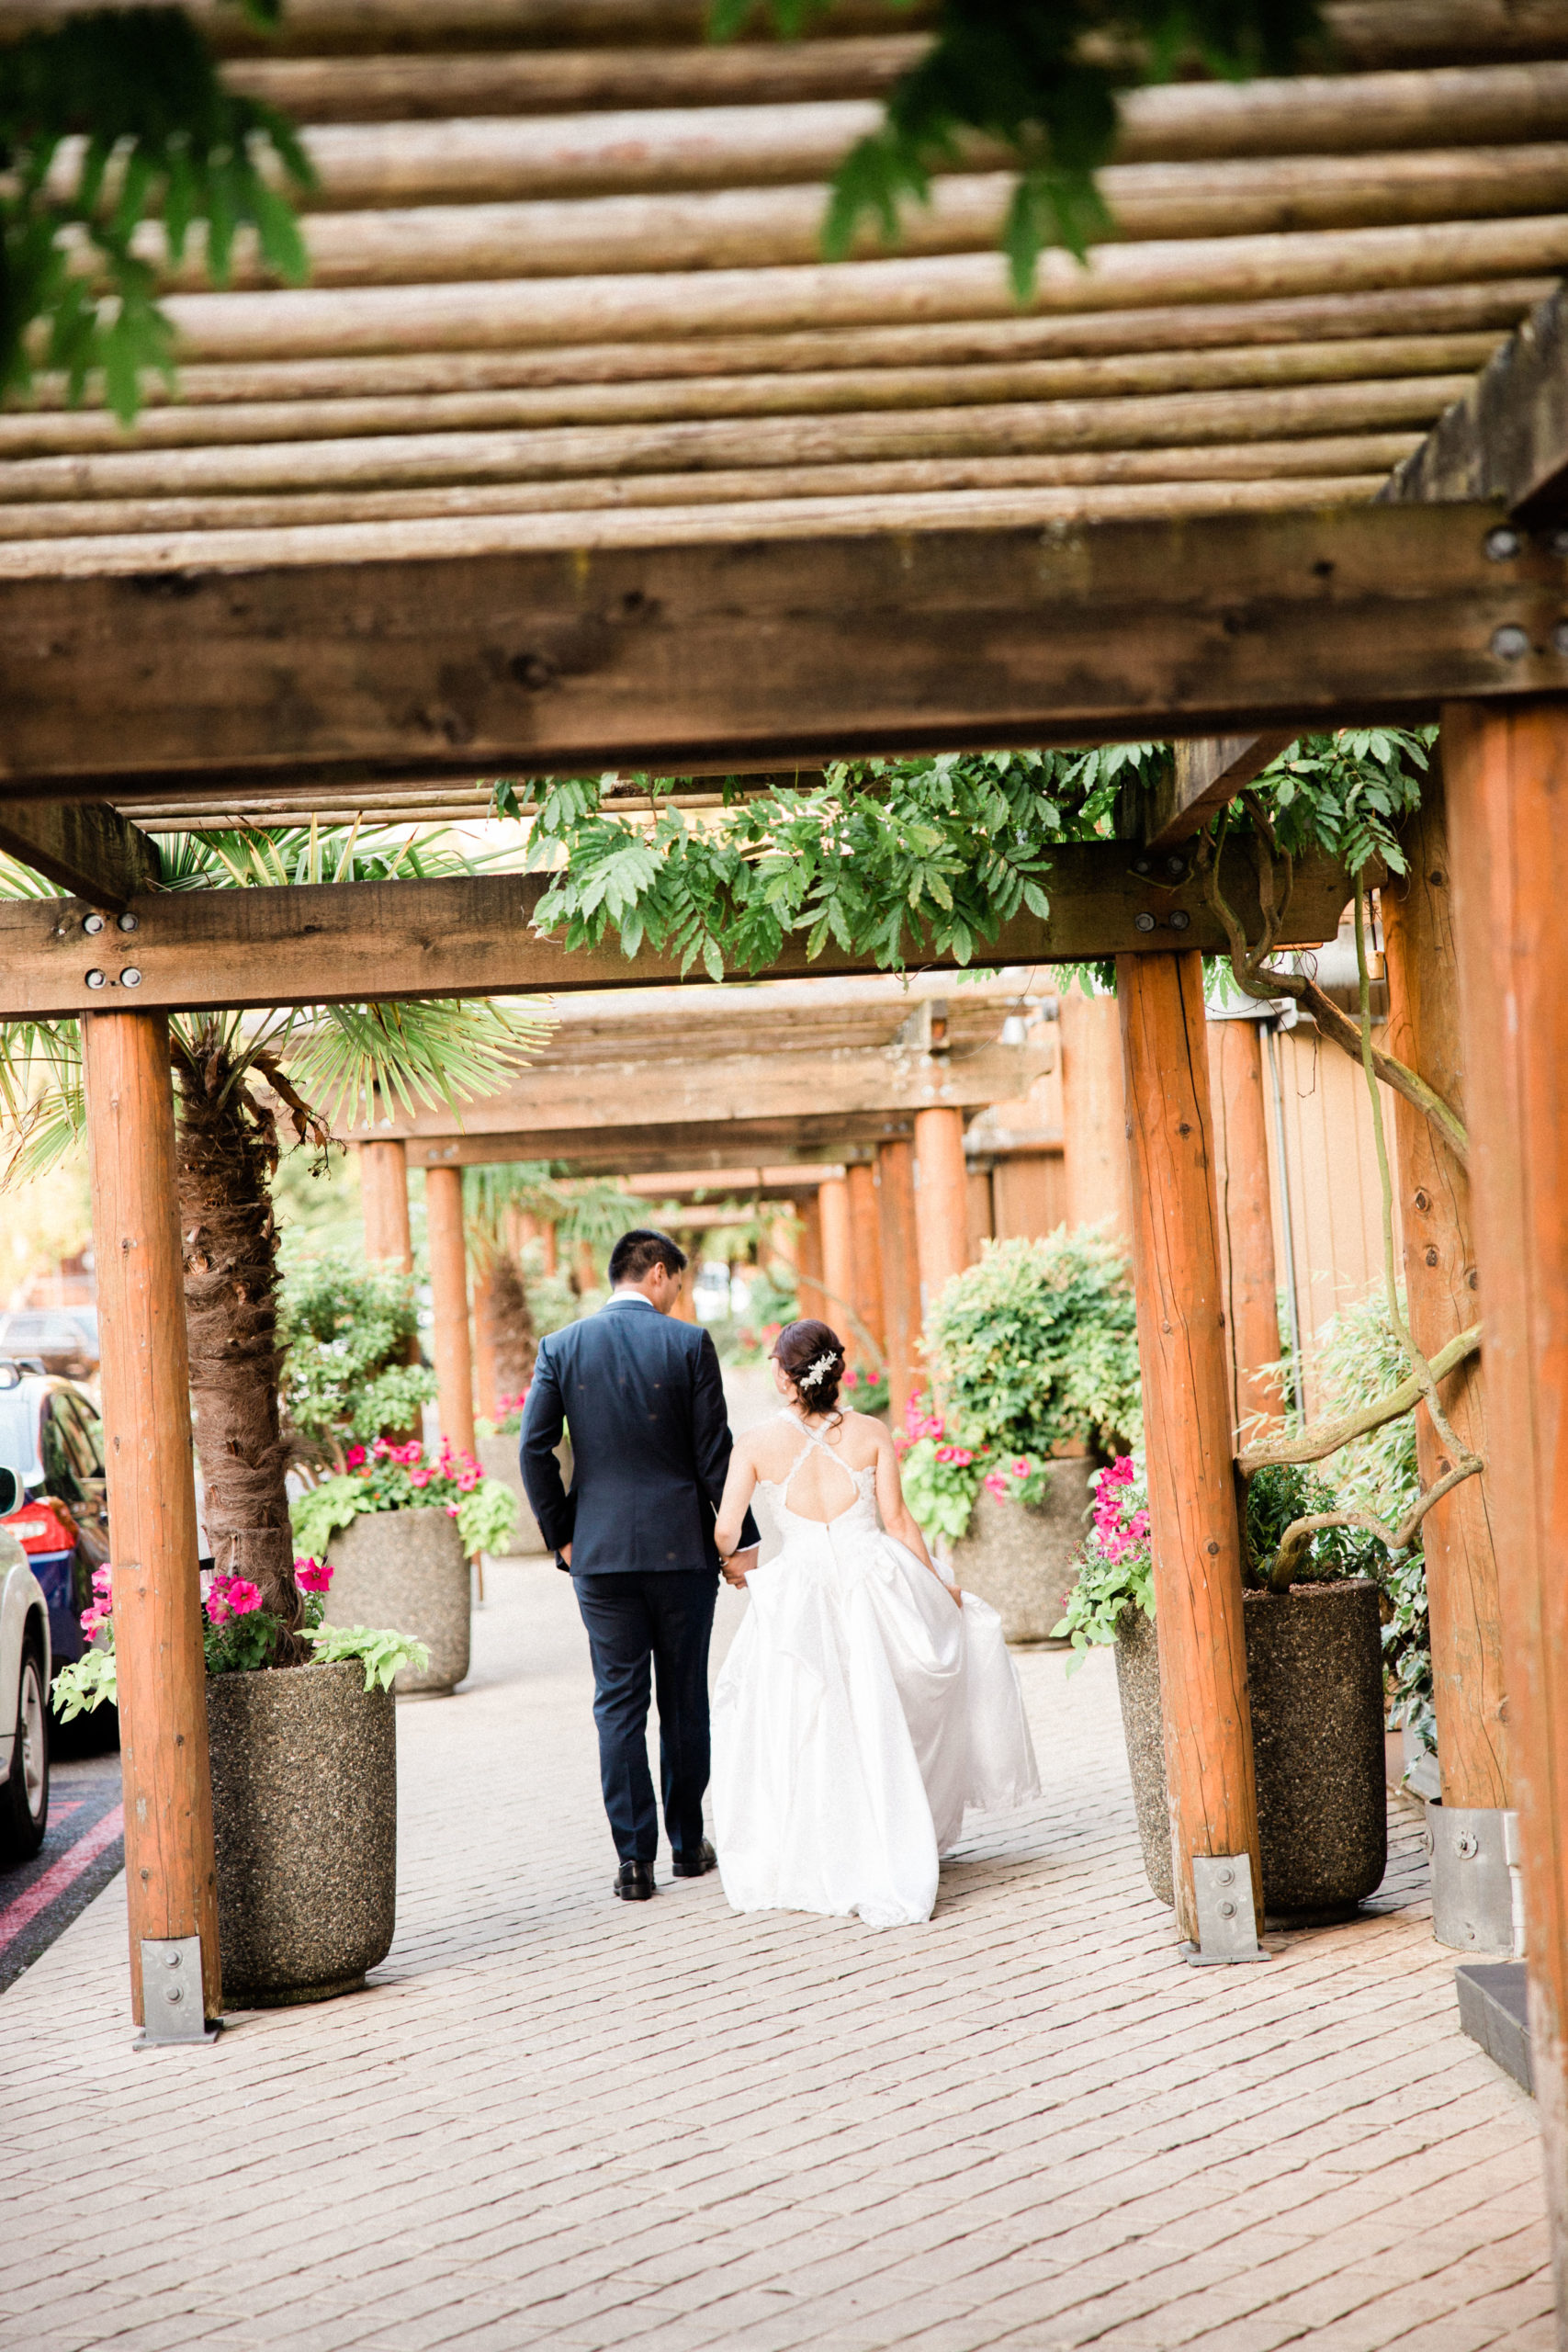 husband and wife leave edgewater hotel lobby after getting married on their way to honeymoon